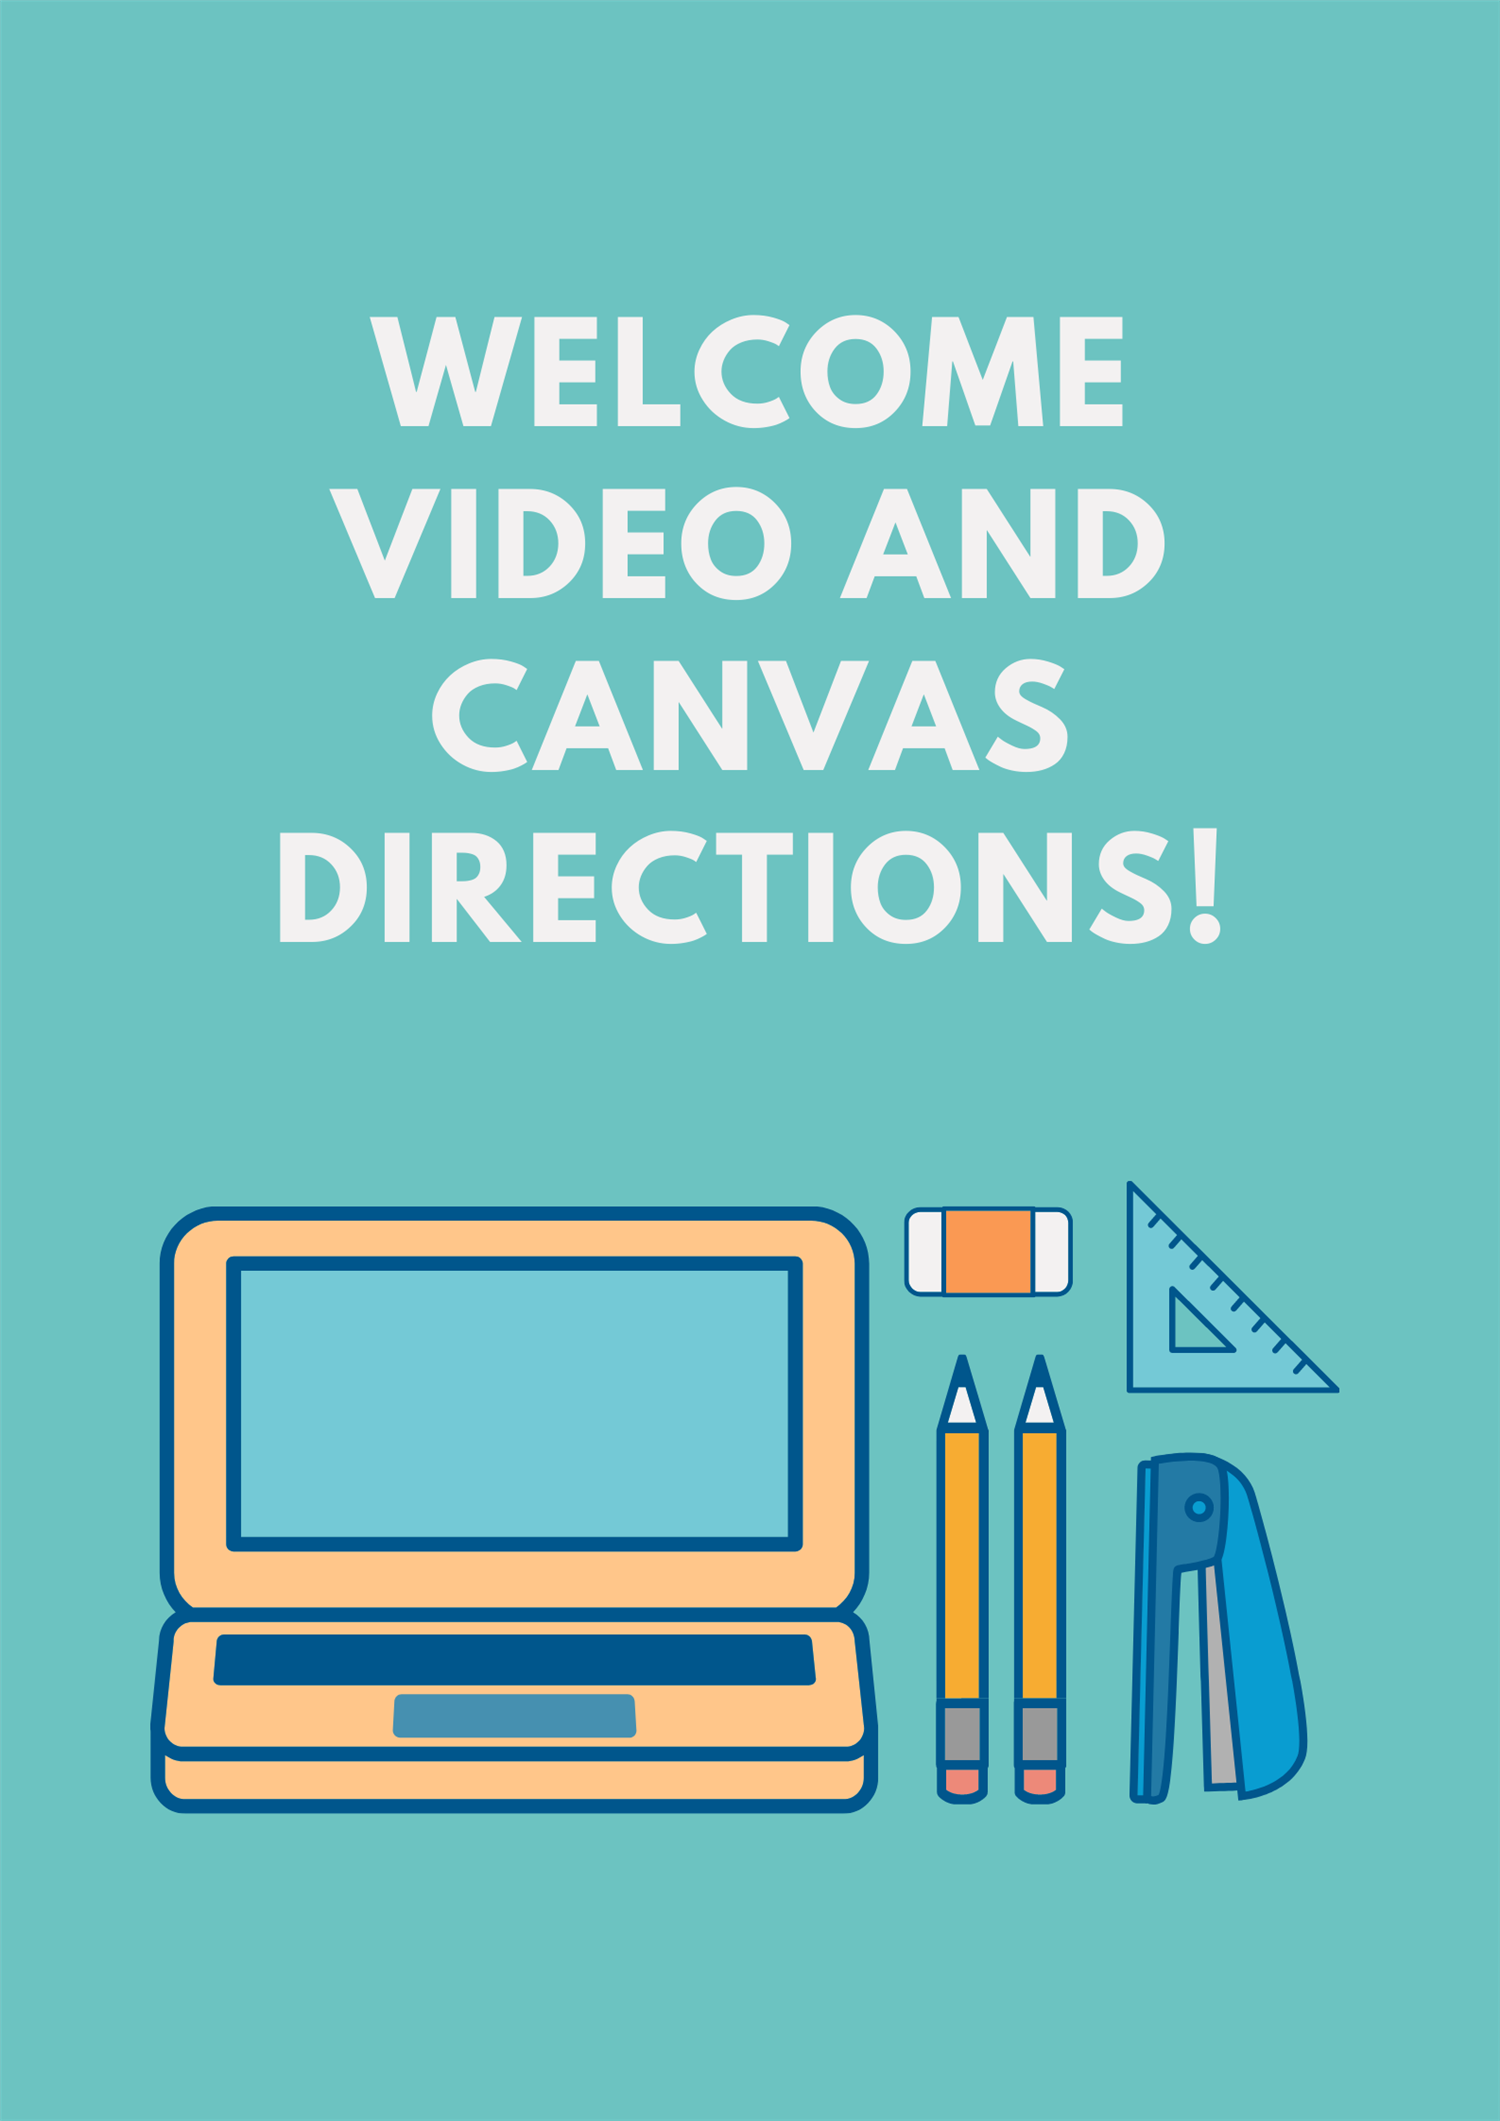 Click here to watch the welcome video and canvas help.